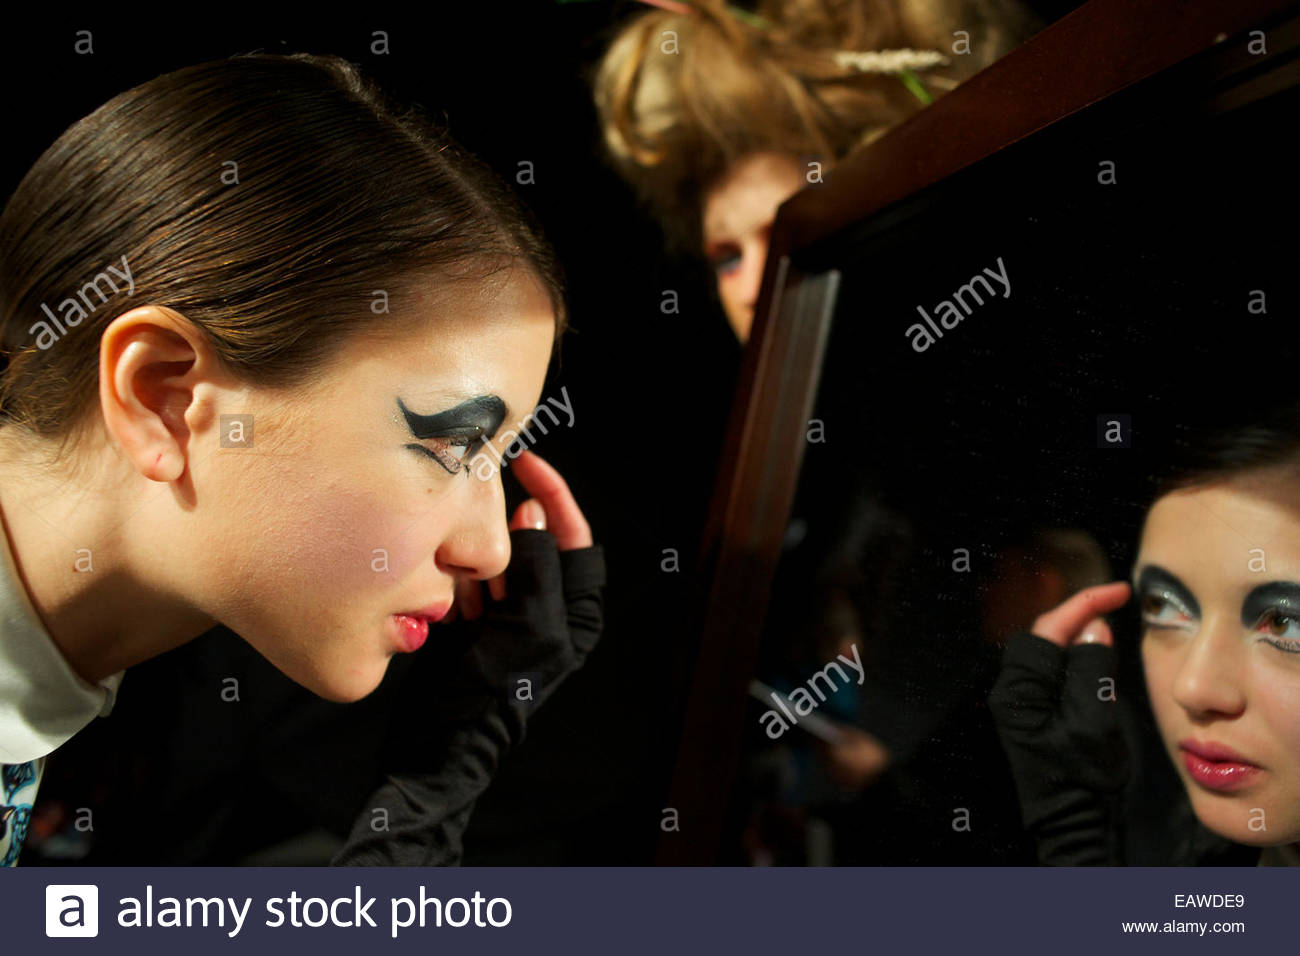 Models backstage during fashion week in Russia. - Stock Image